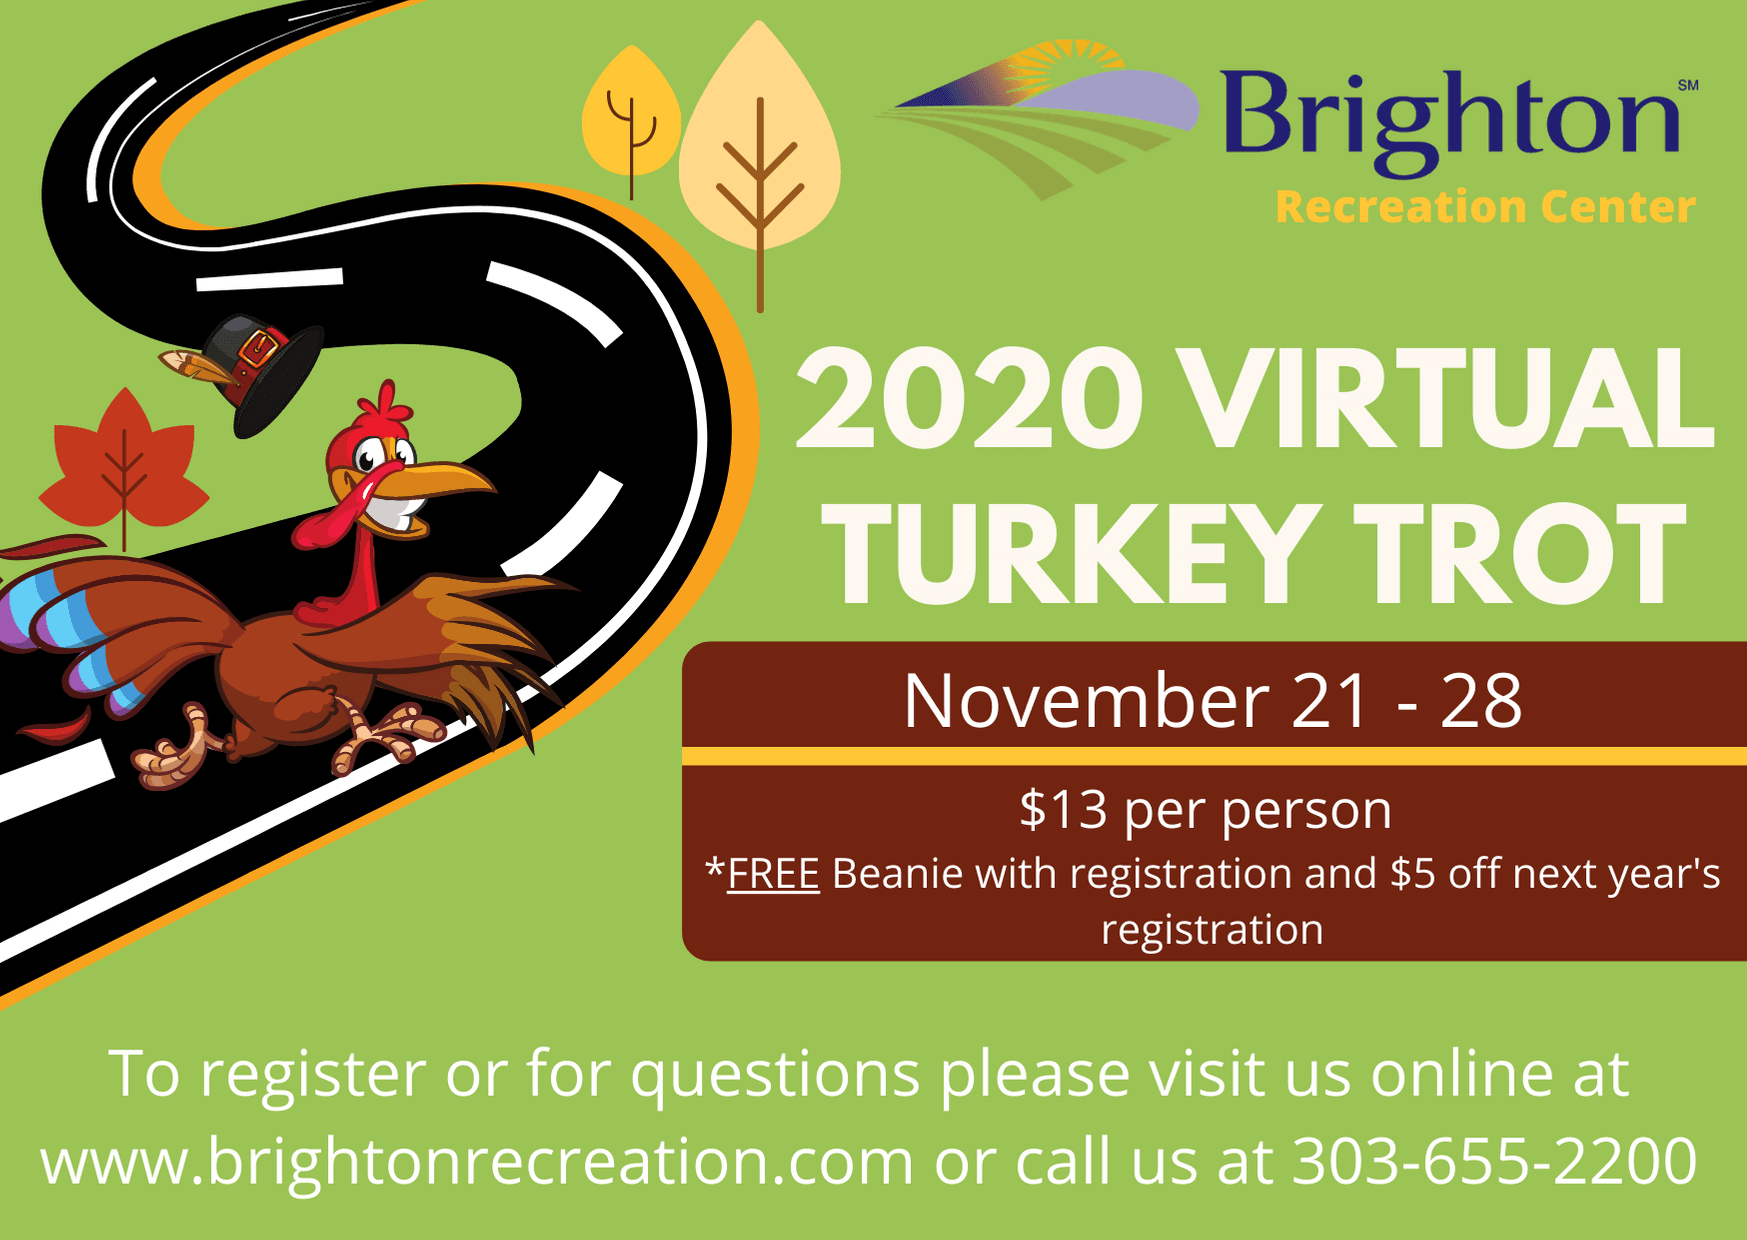 Virtual Turkey Trot 2020